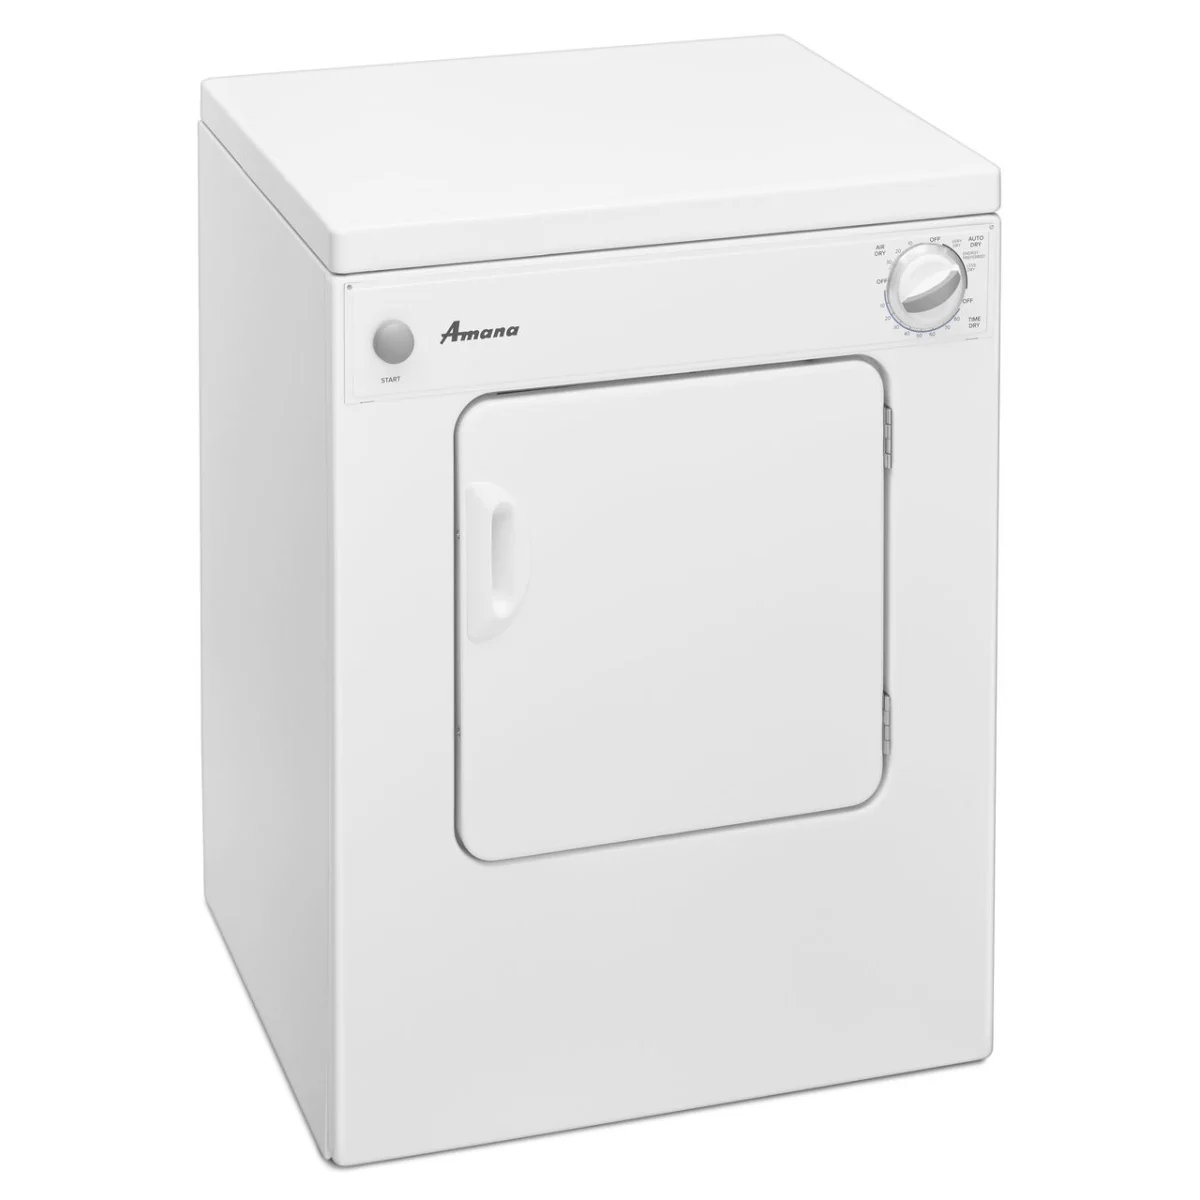 hight resolution of ft electric dryer with air only cycle